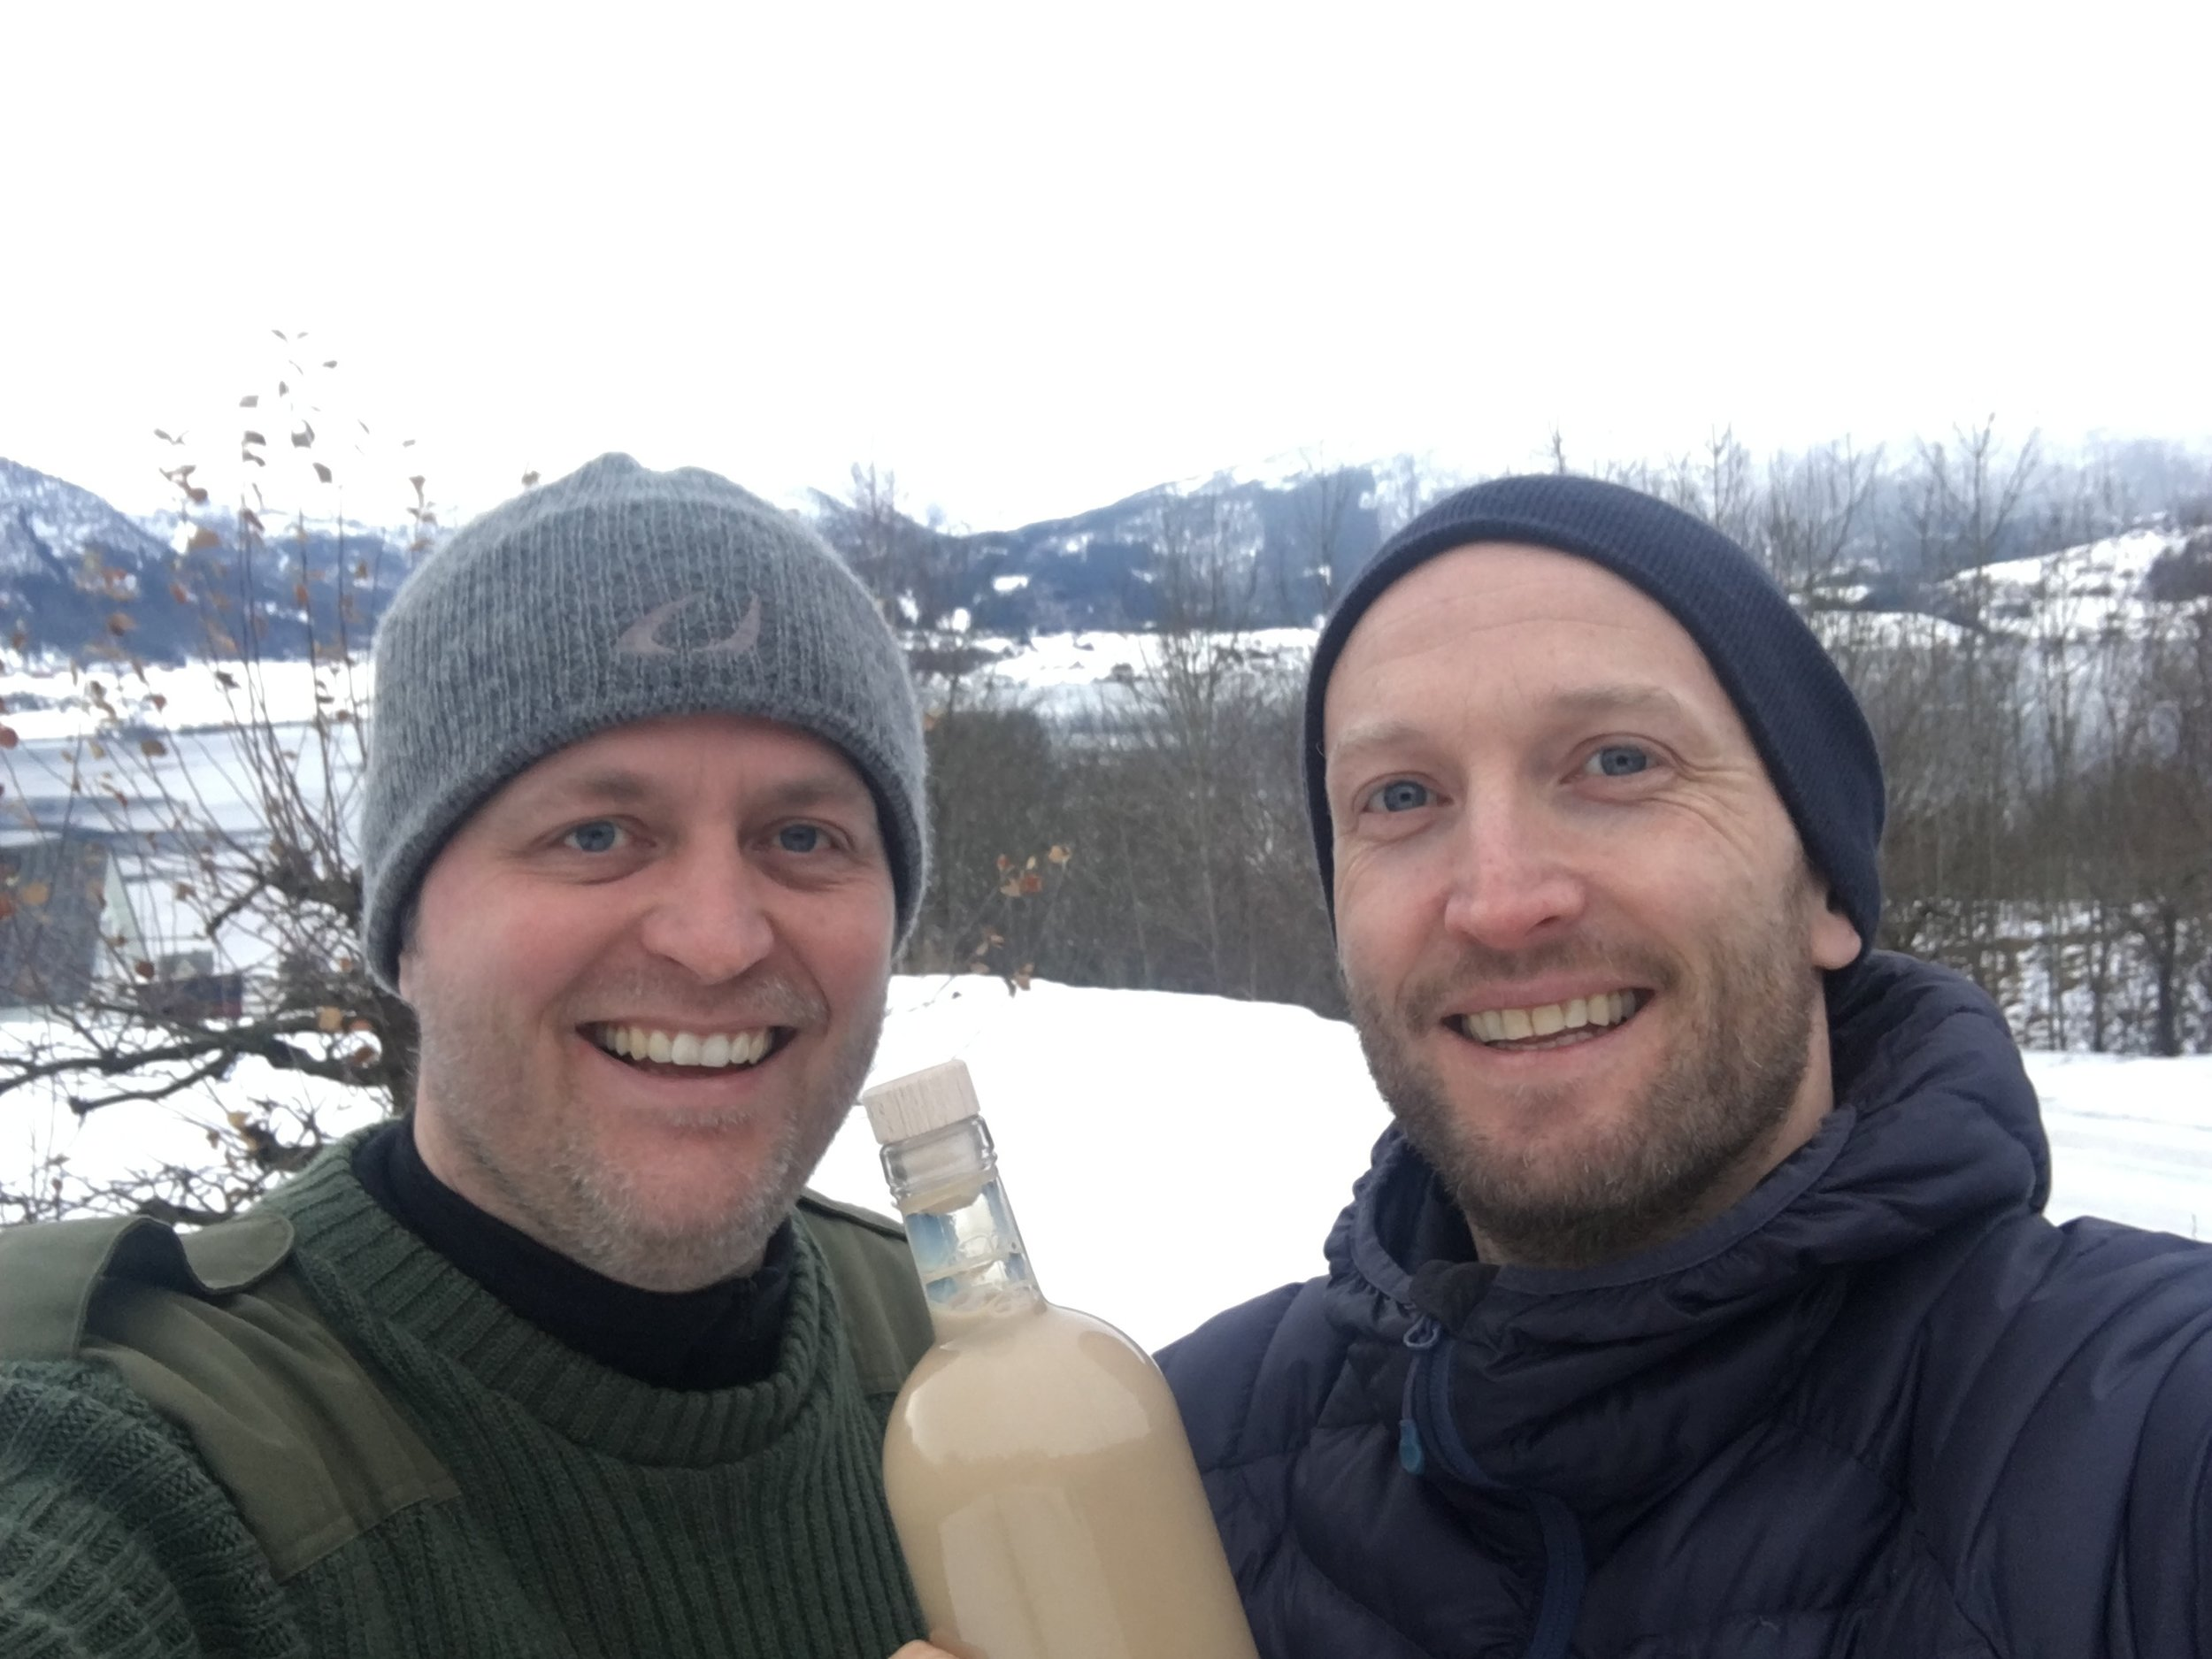 Jann Vestby and Øyvind Løkling with the first Fjording bottle. Gloppefjorden, a part of Nordfjorden, in the background.